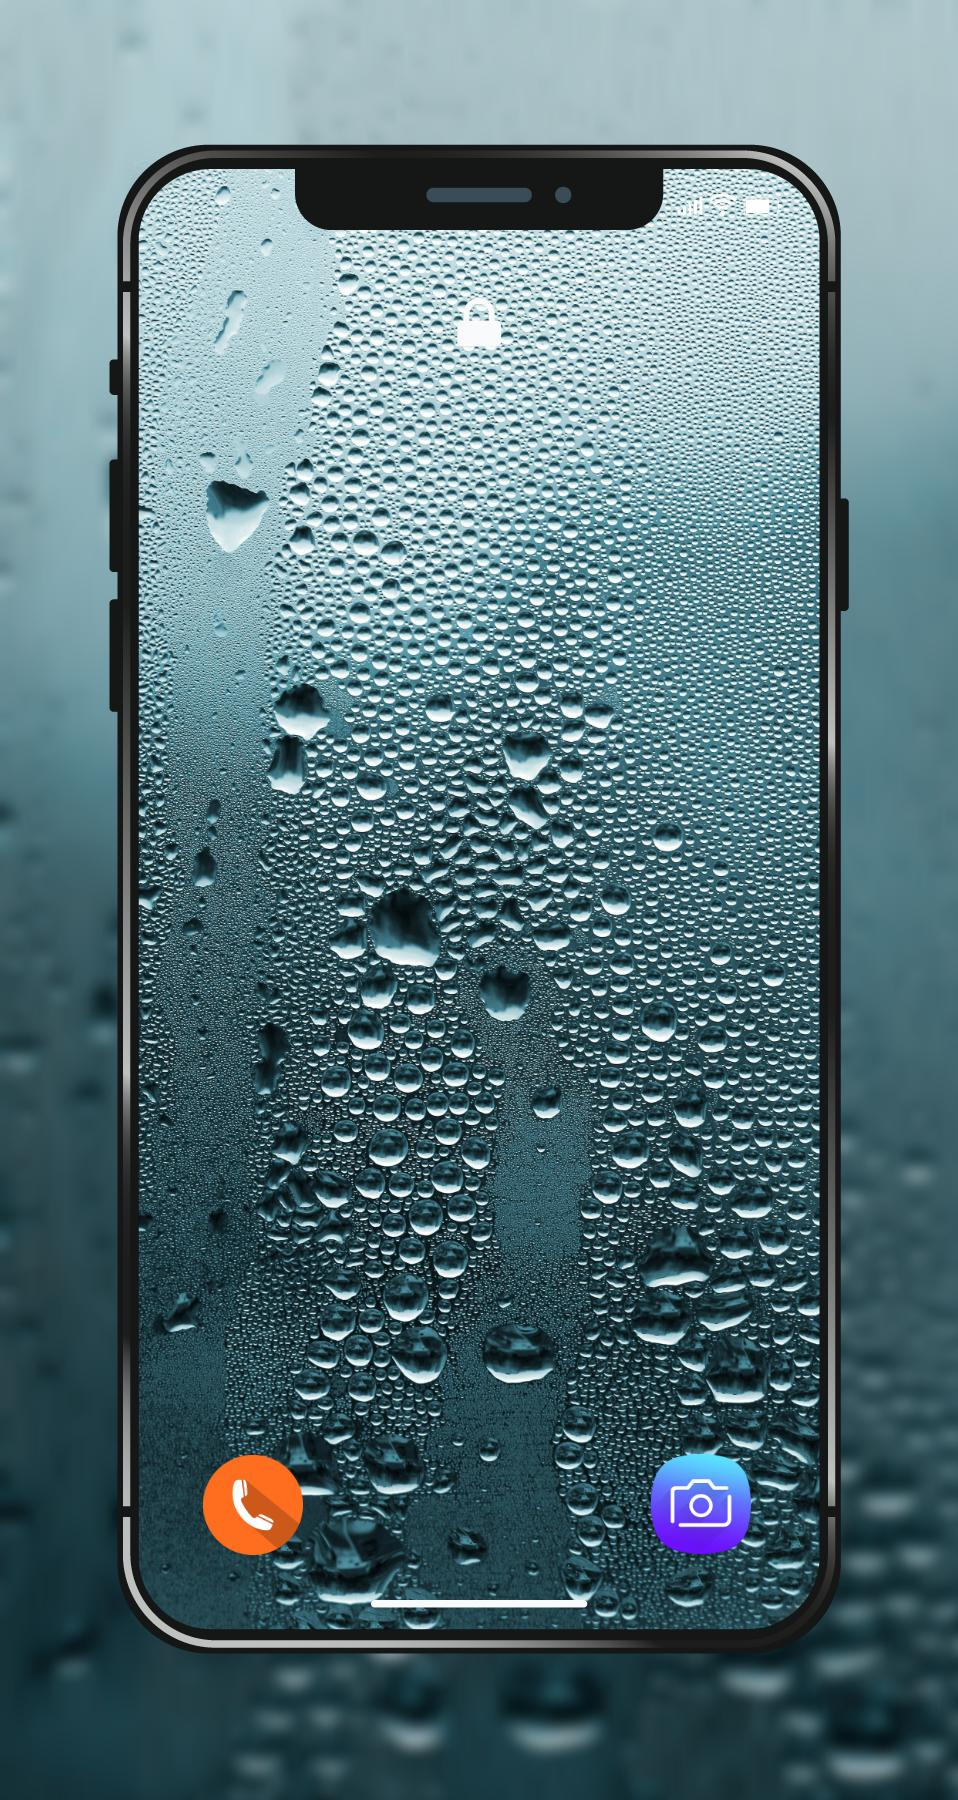 100 Wet Screen Wallpapers Hd 4k Wet Screen For Android Apk Download